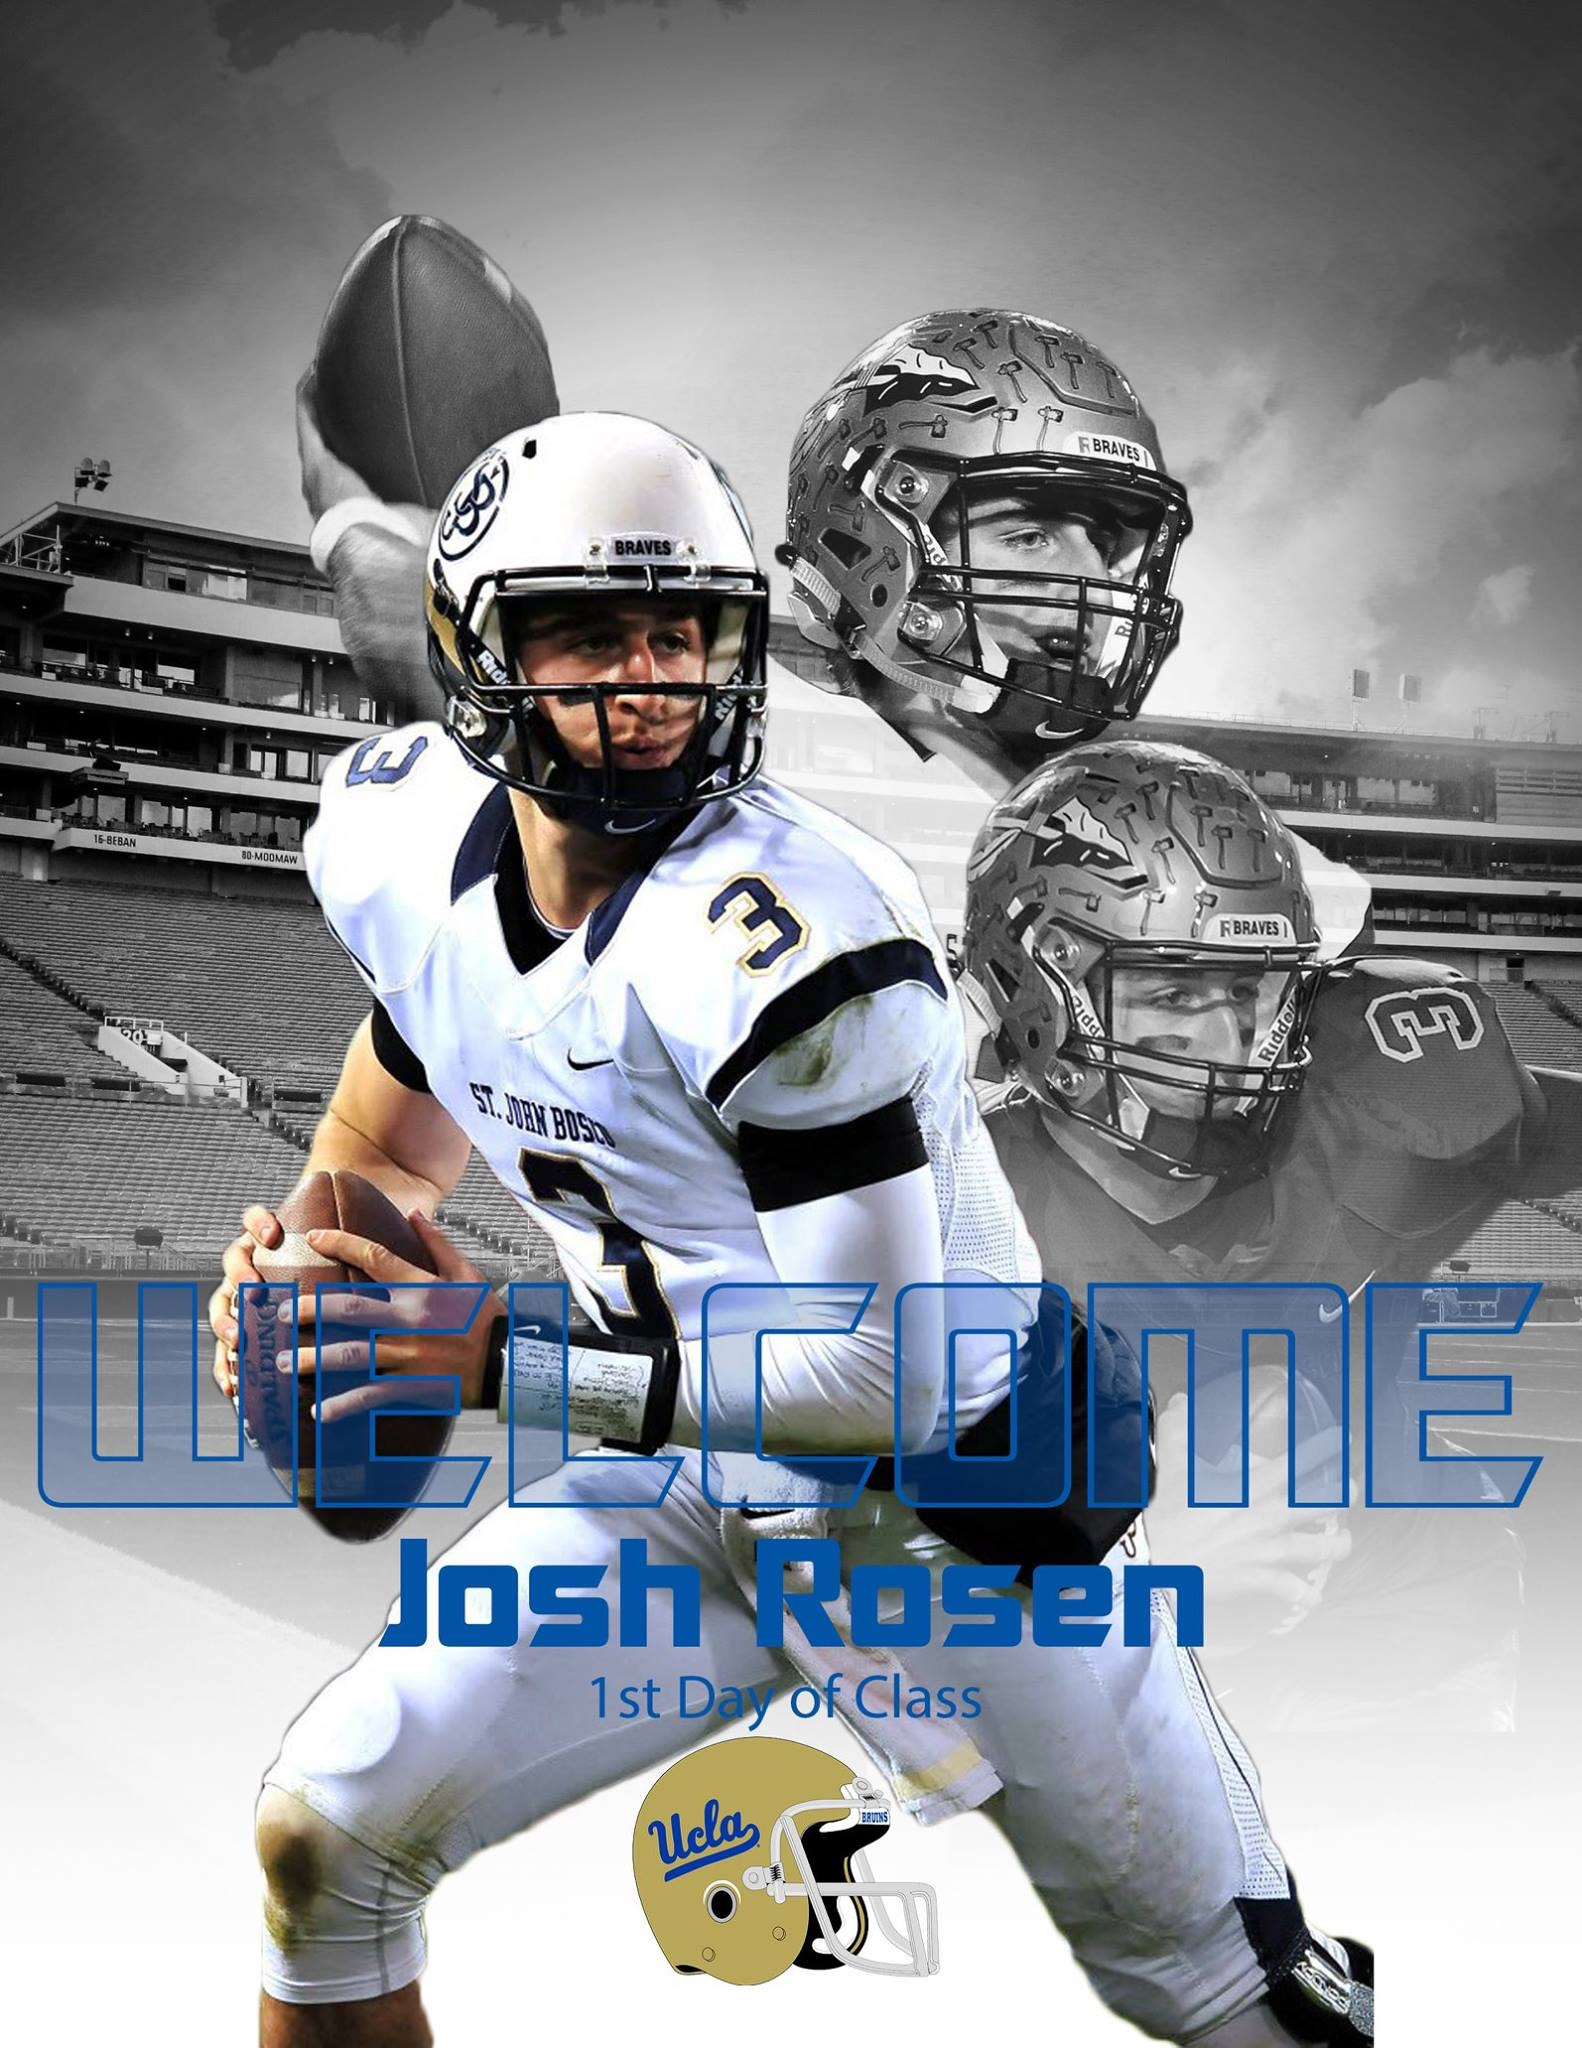 Rosen may have more hype than any UCLA football recruit in history.